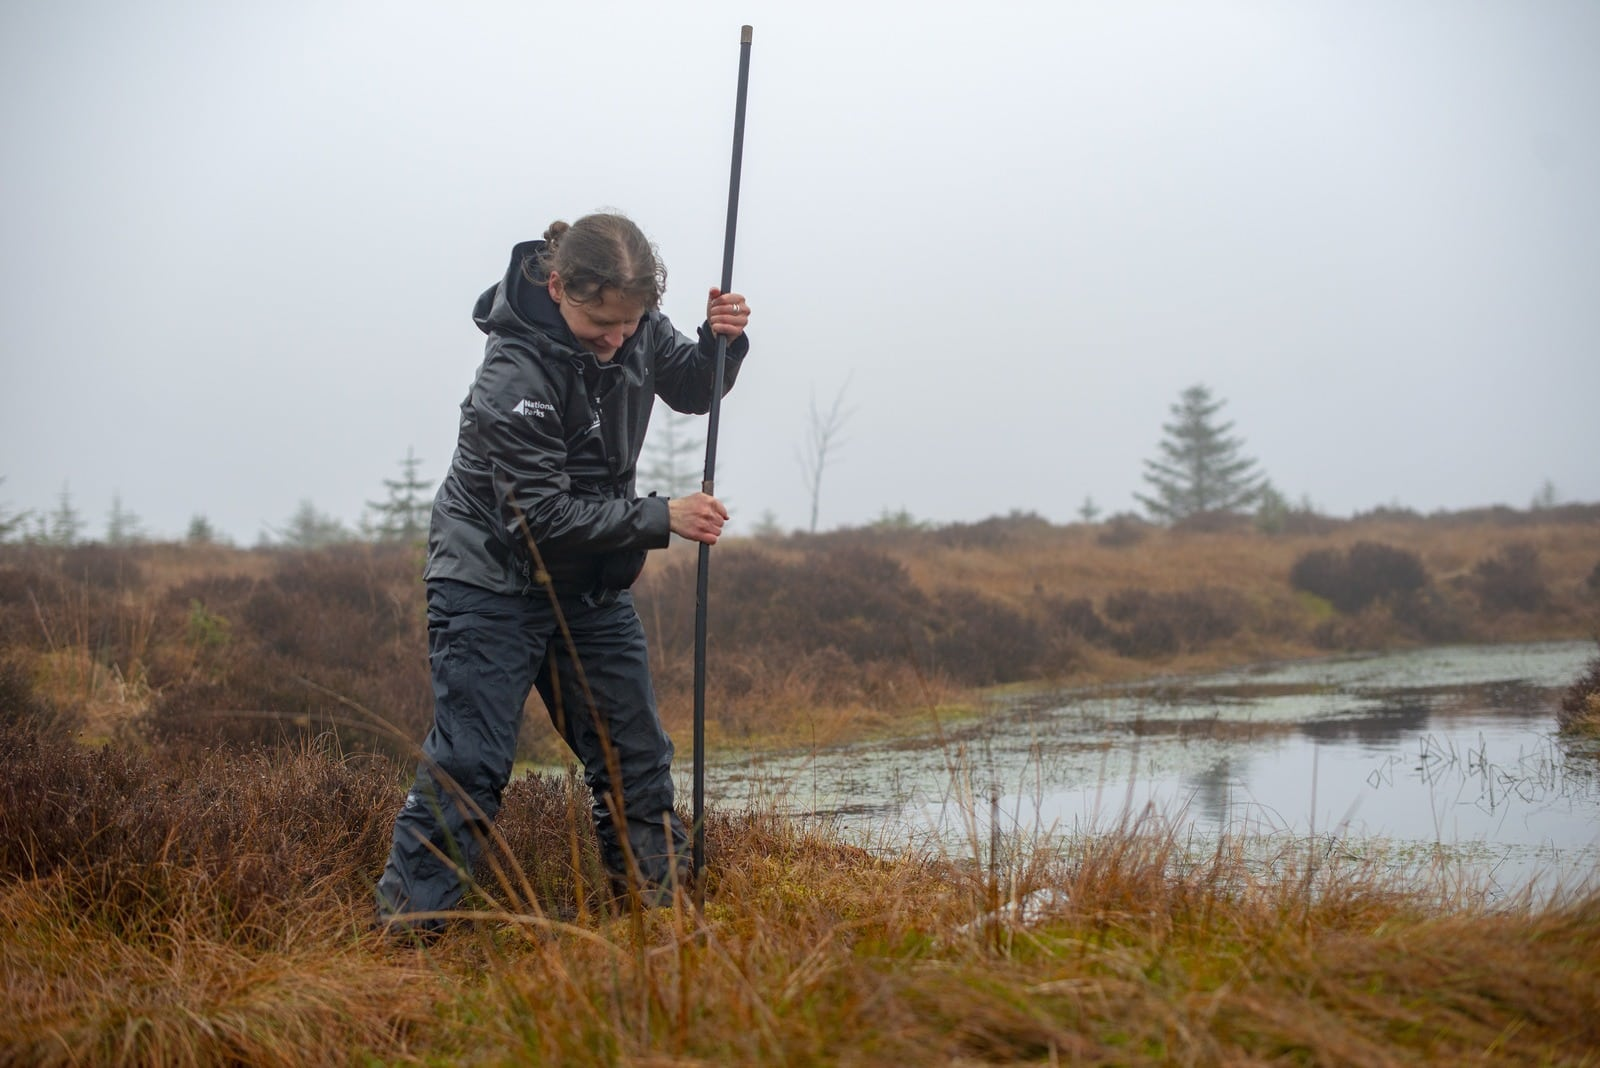 A National Park Officer measuring peat depths using peat rods